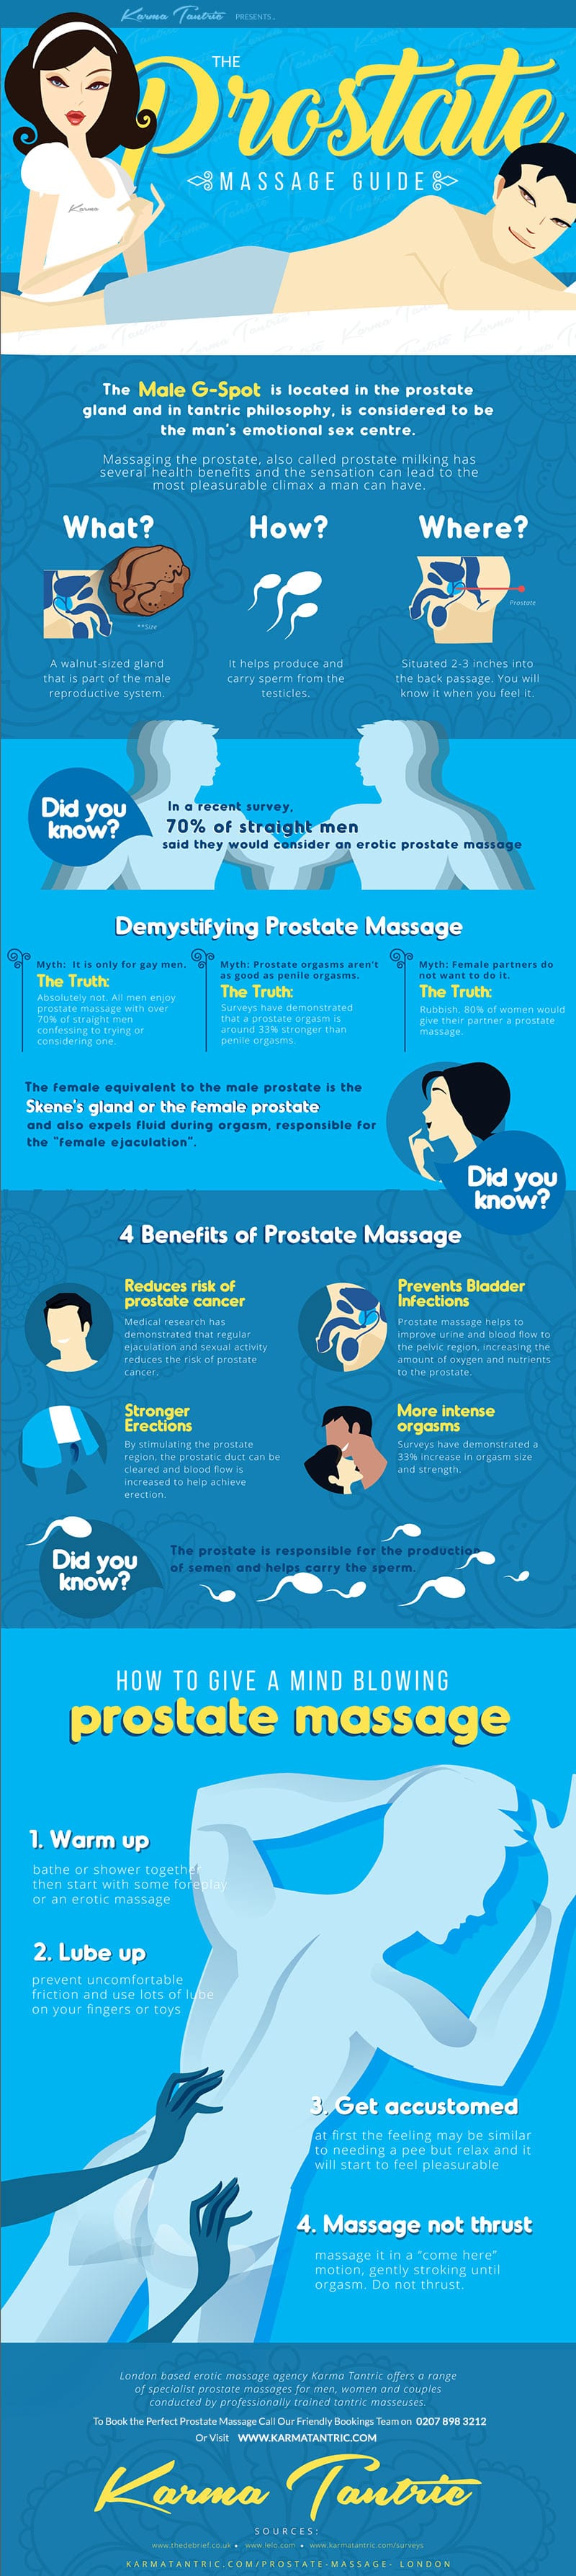 Prostate Massages Are Good For Your Health